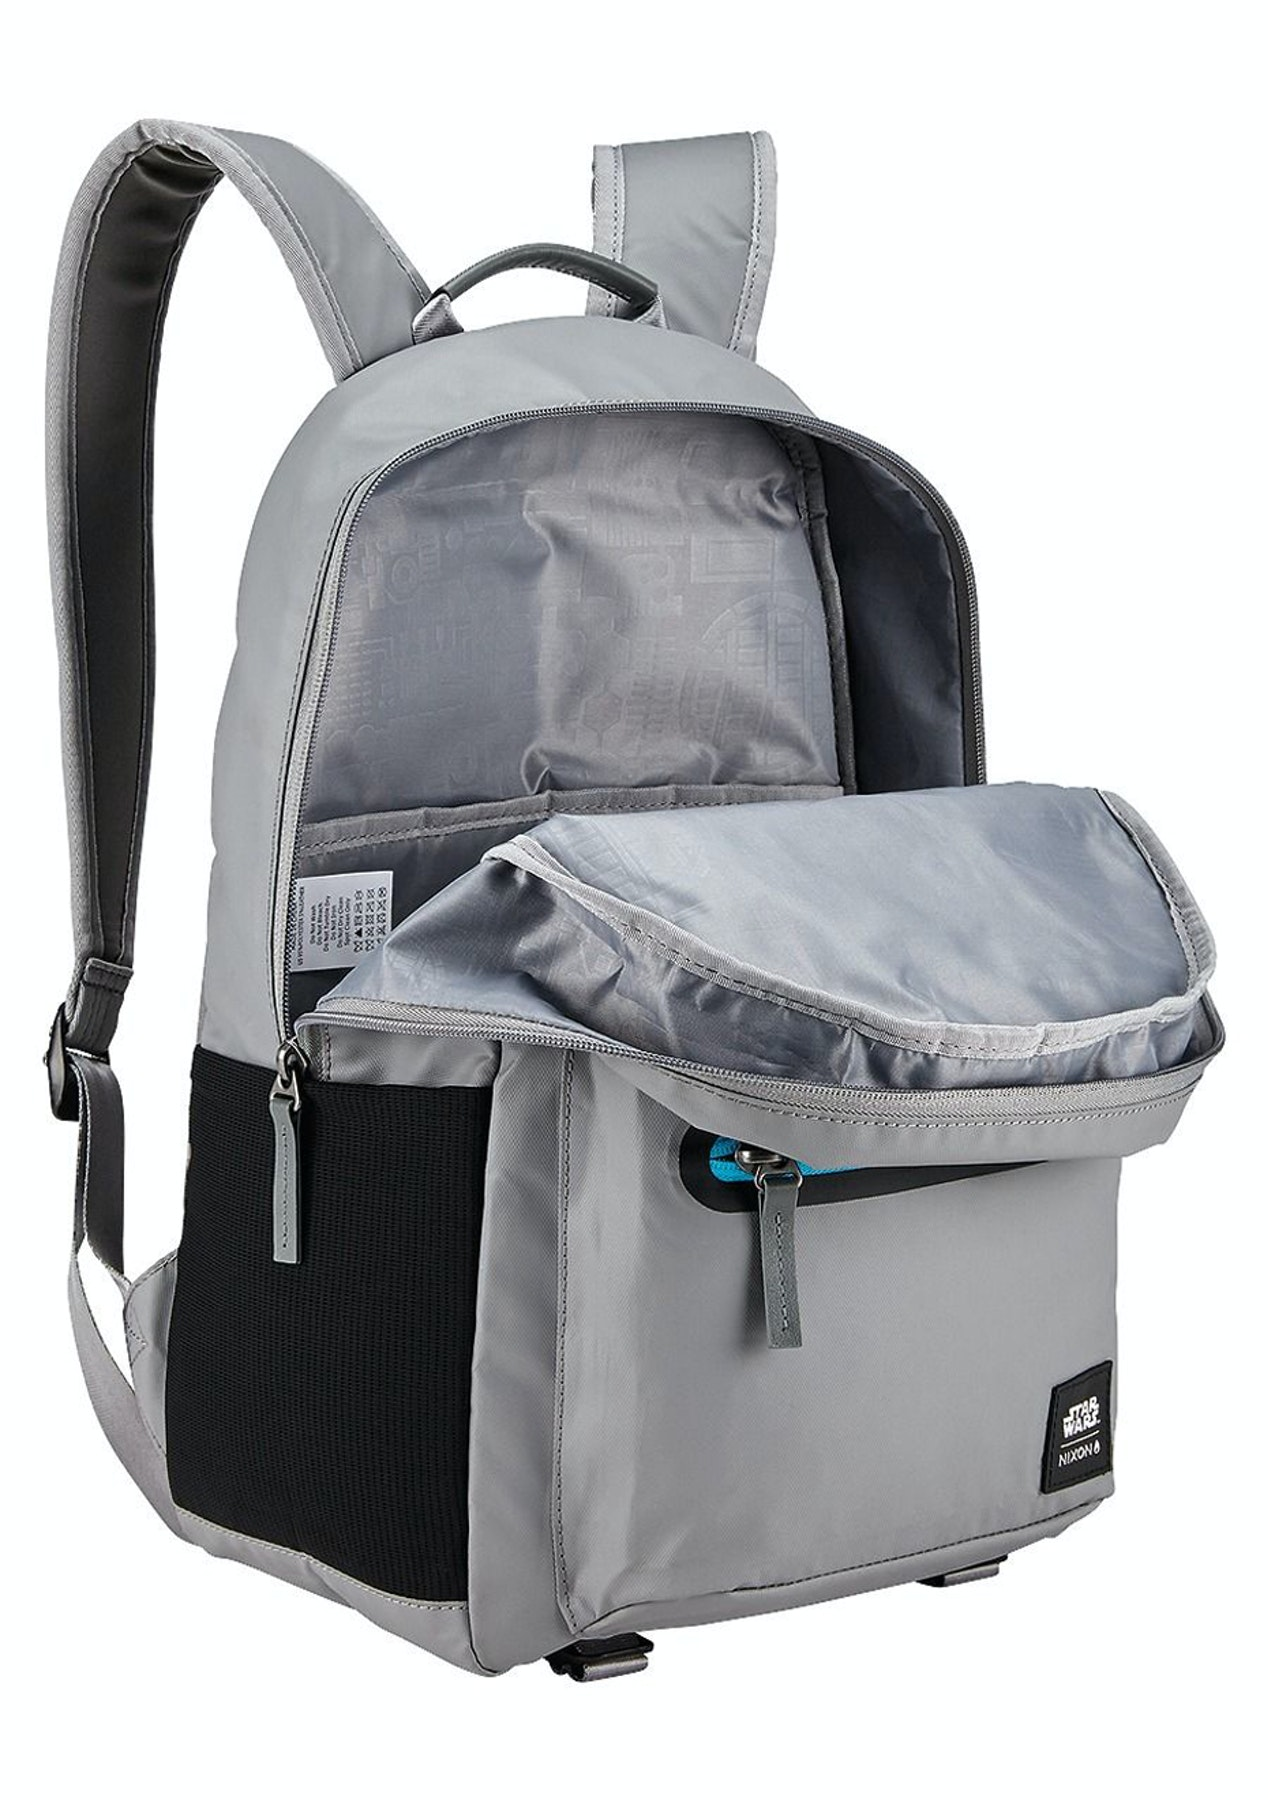 d0c5a4c602a Nixon C-3 Backpack SW - Nixon Watches   Accessories - Up to 60% Off ...